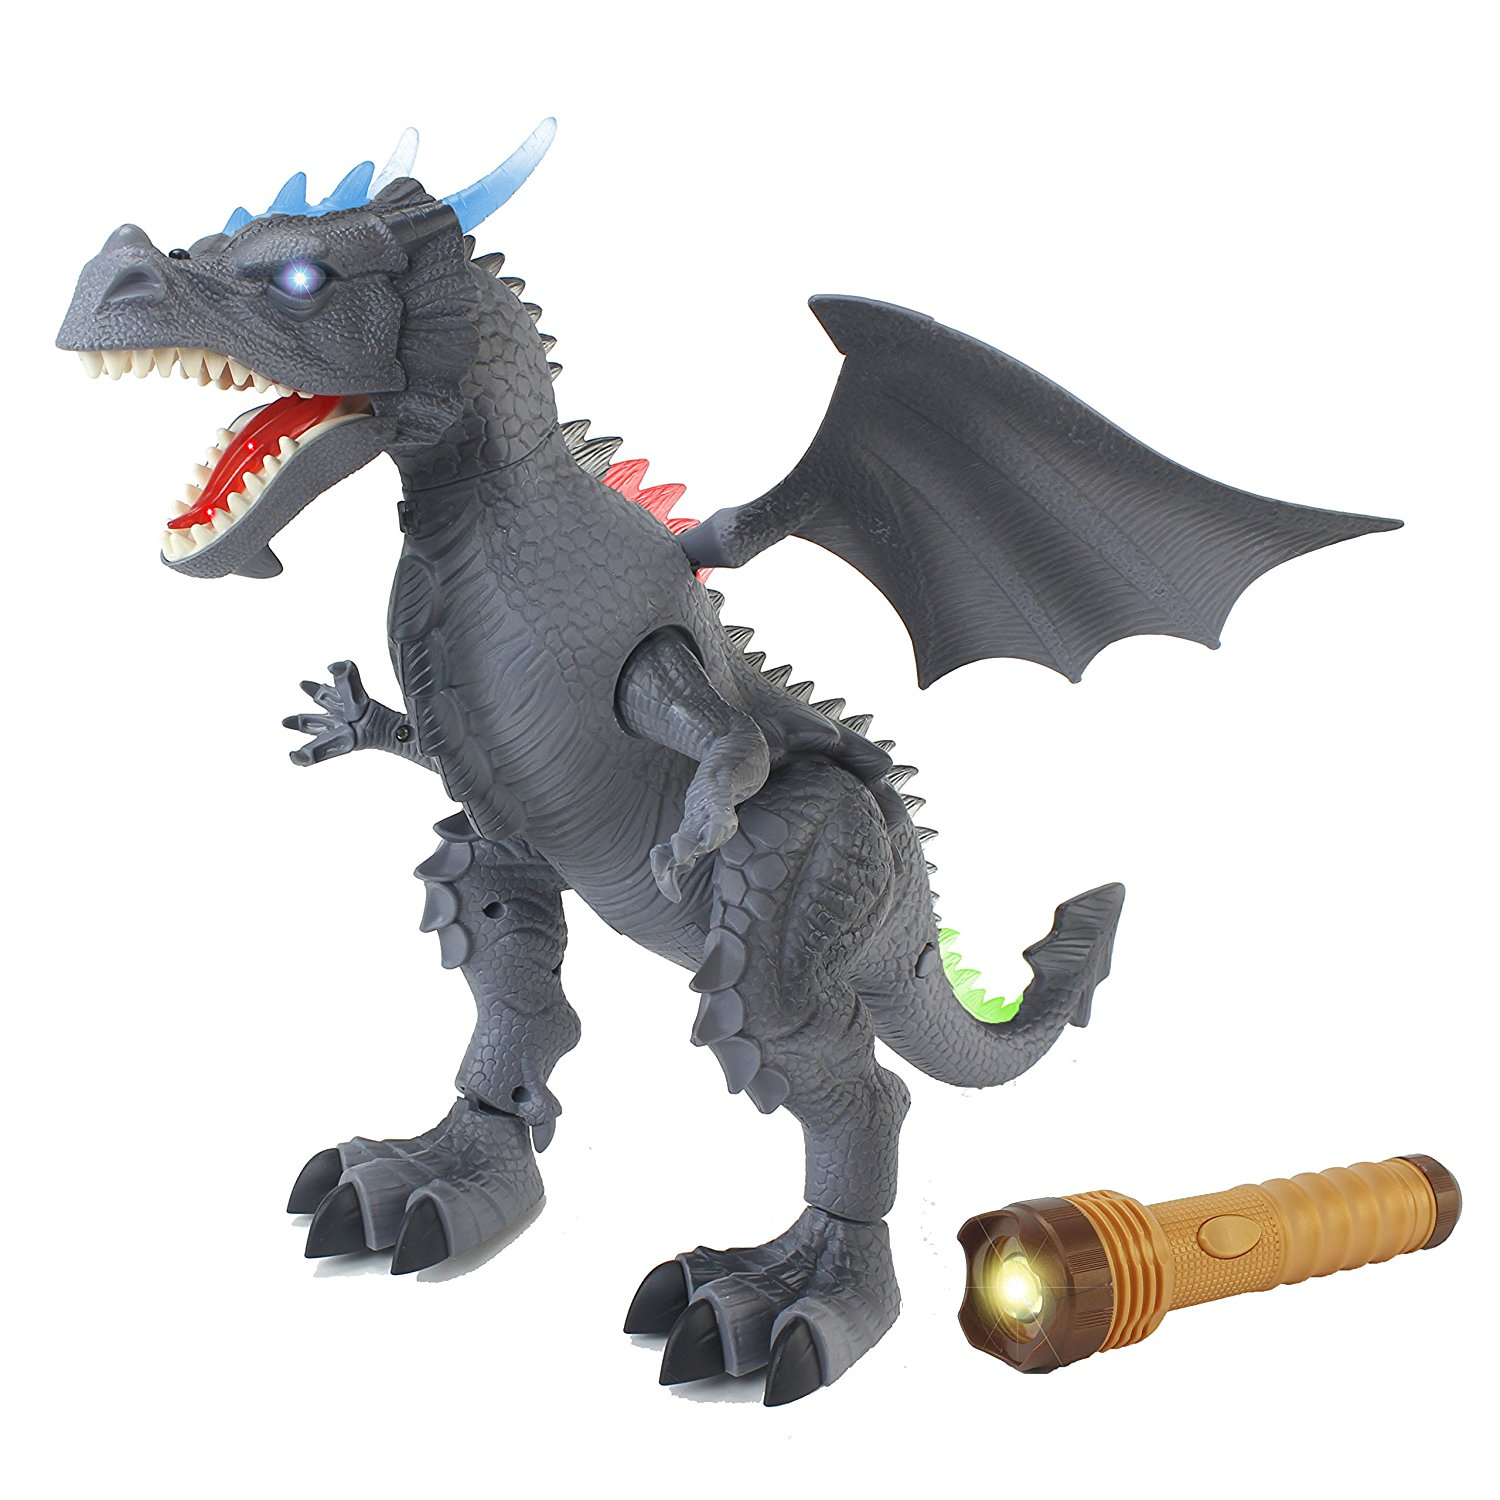 The New World Of Dinosaurs Battery Operated Remote Control Toy RC Gray Dragon w/ Lights, Sounds, Walking/Wing/Mouth Action, & Flashlight Remote Control